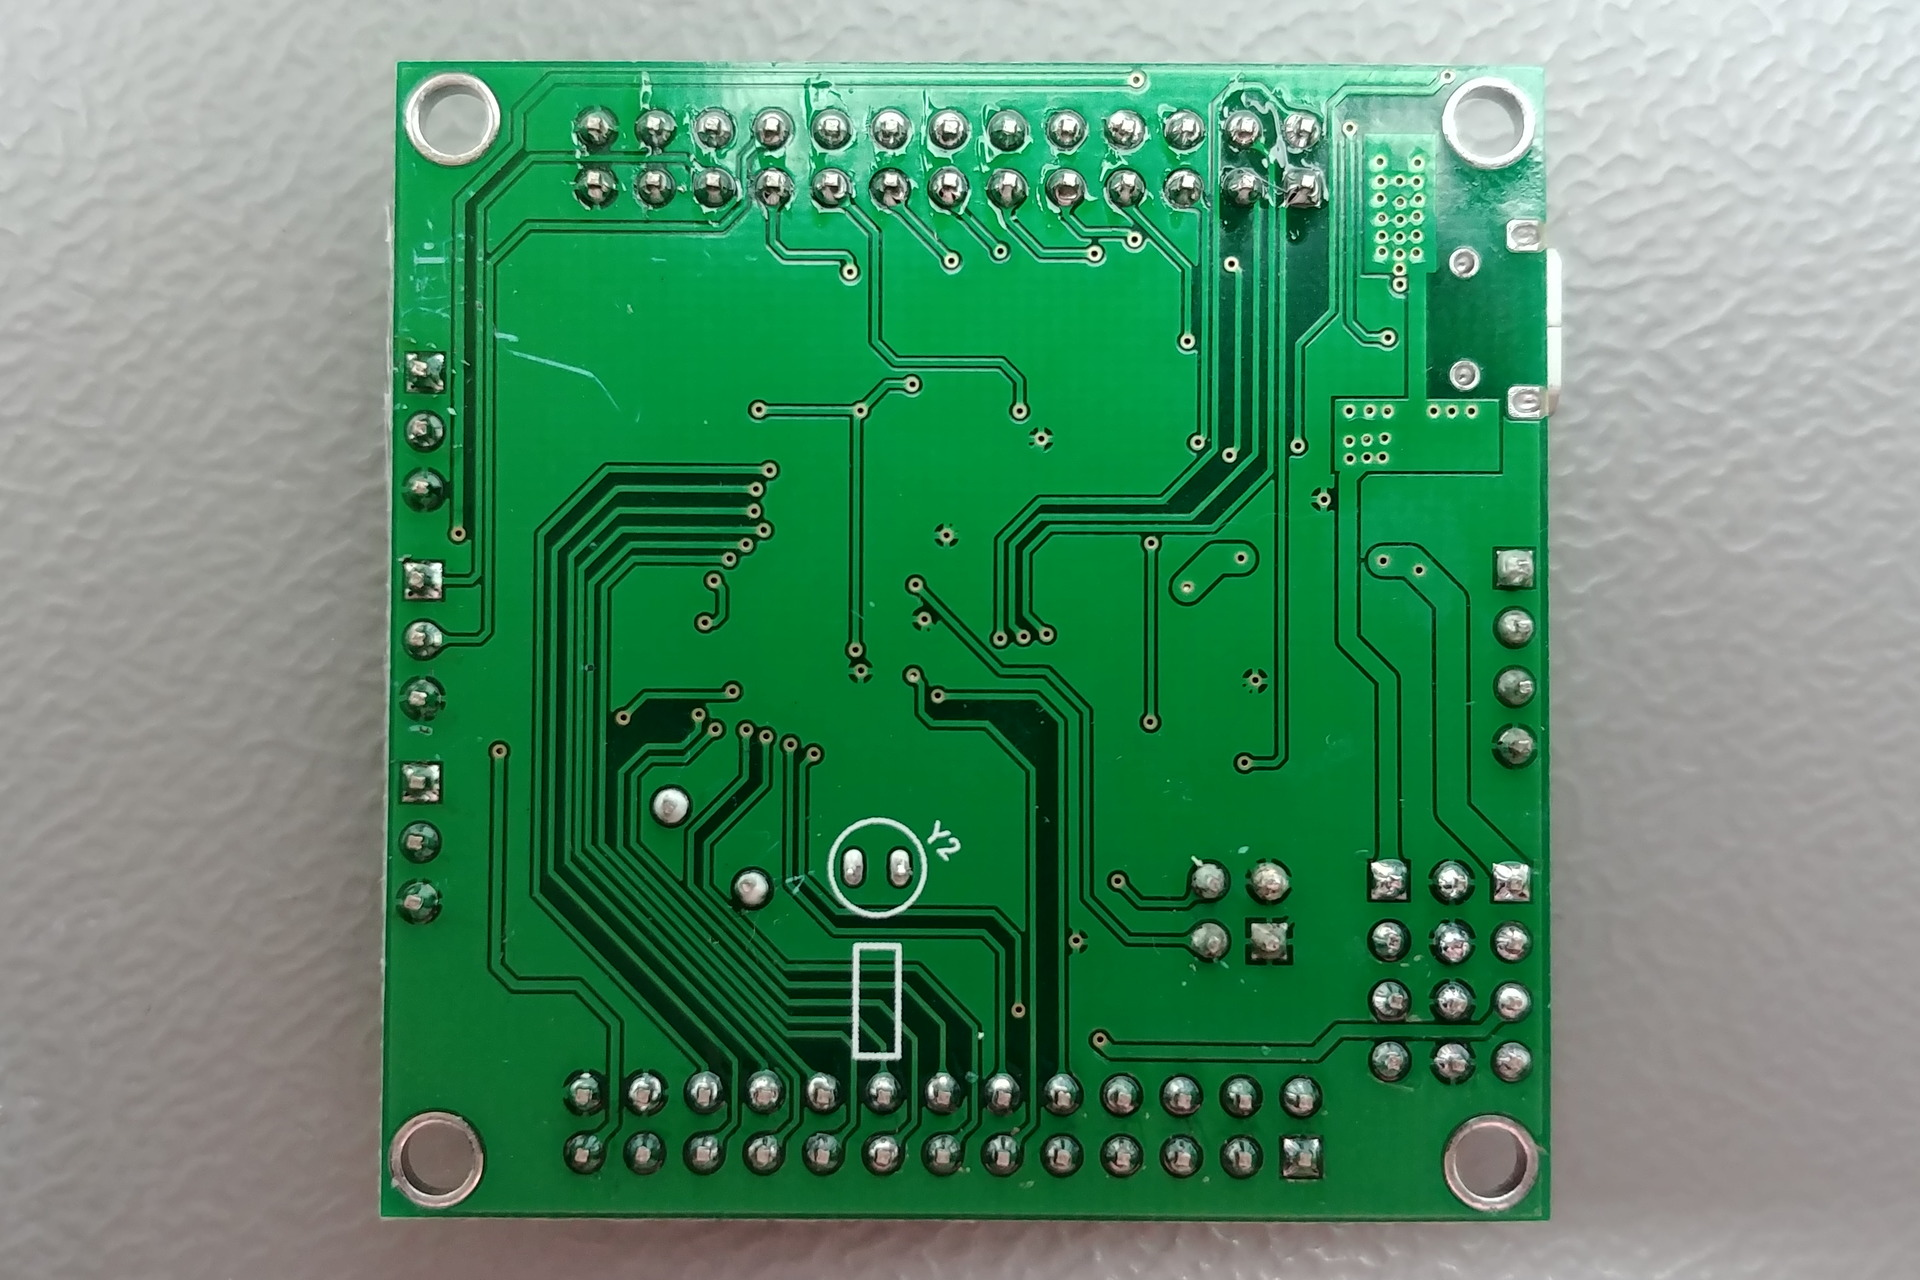 最小系统 (Minimal System) Board: Bottom view